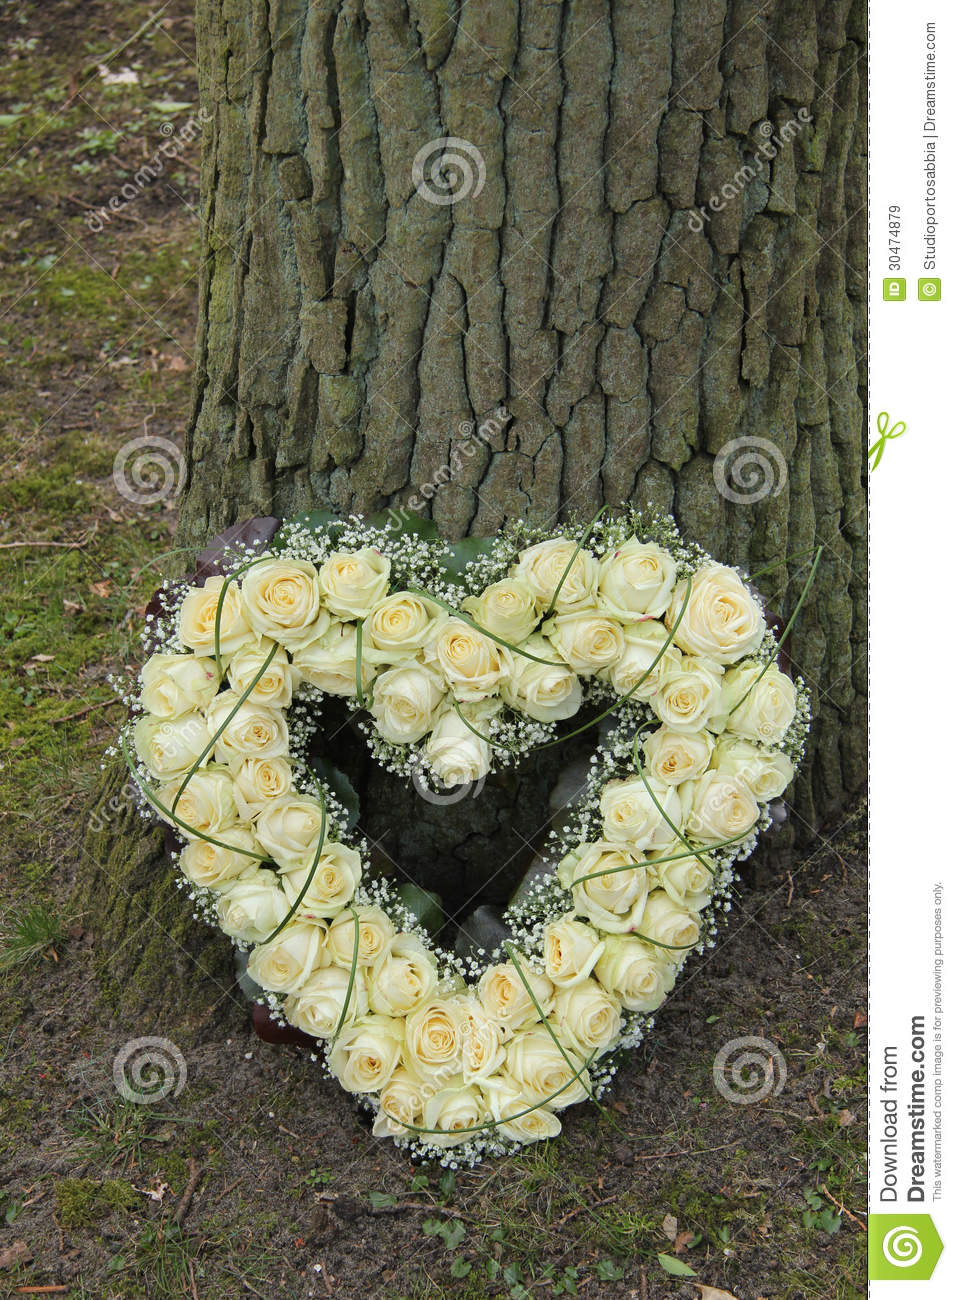 Heart shaped sympathy flowers stock image image of sympathy tree heart shaped sympathy flowers izmirmasajfo Gallery